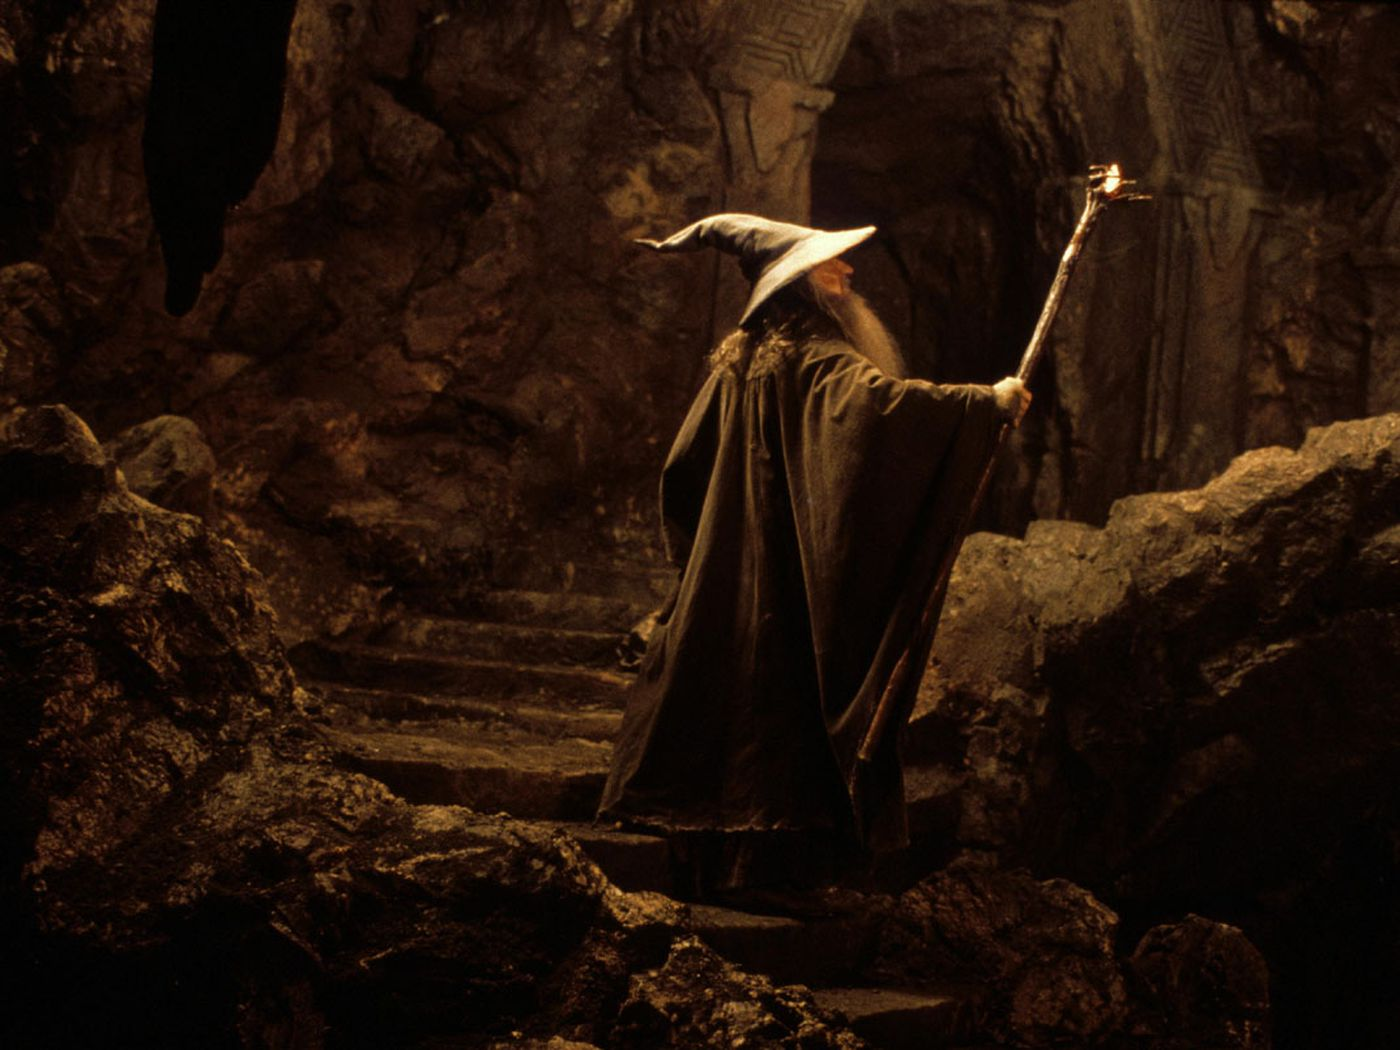 Looking Back On What Made The Lord Of The Rings Trilogy Special